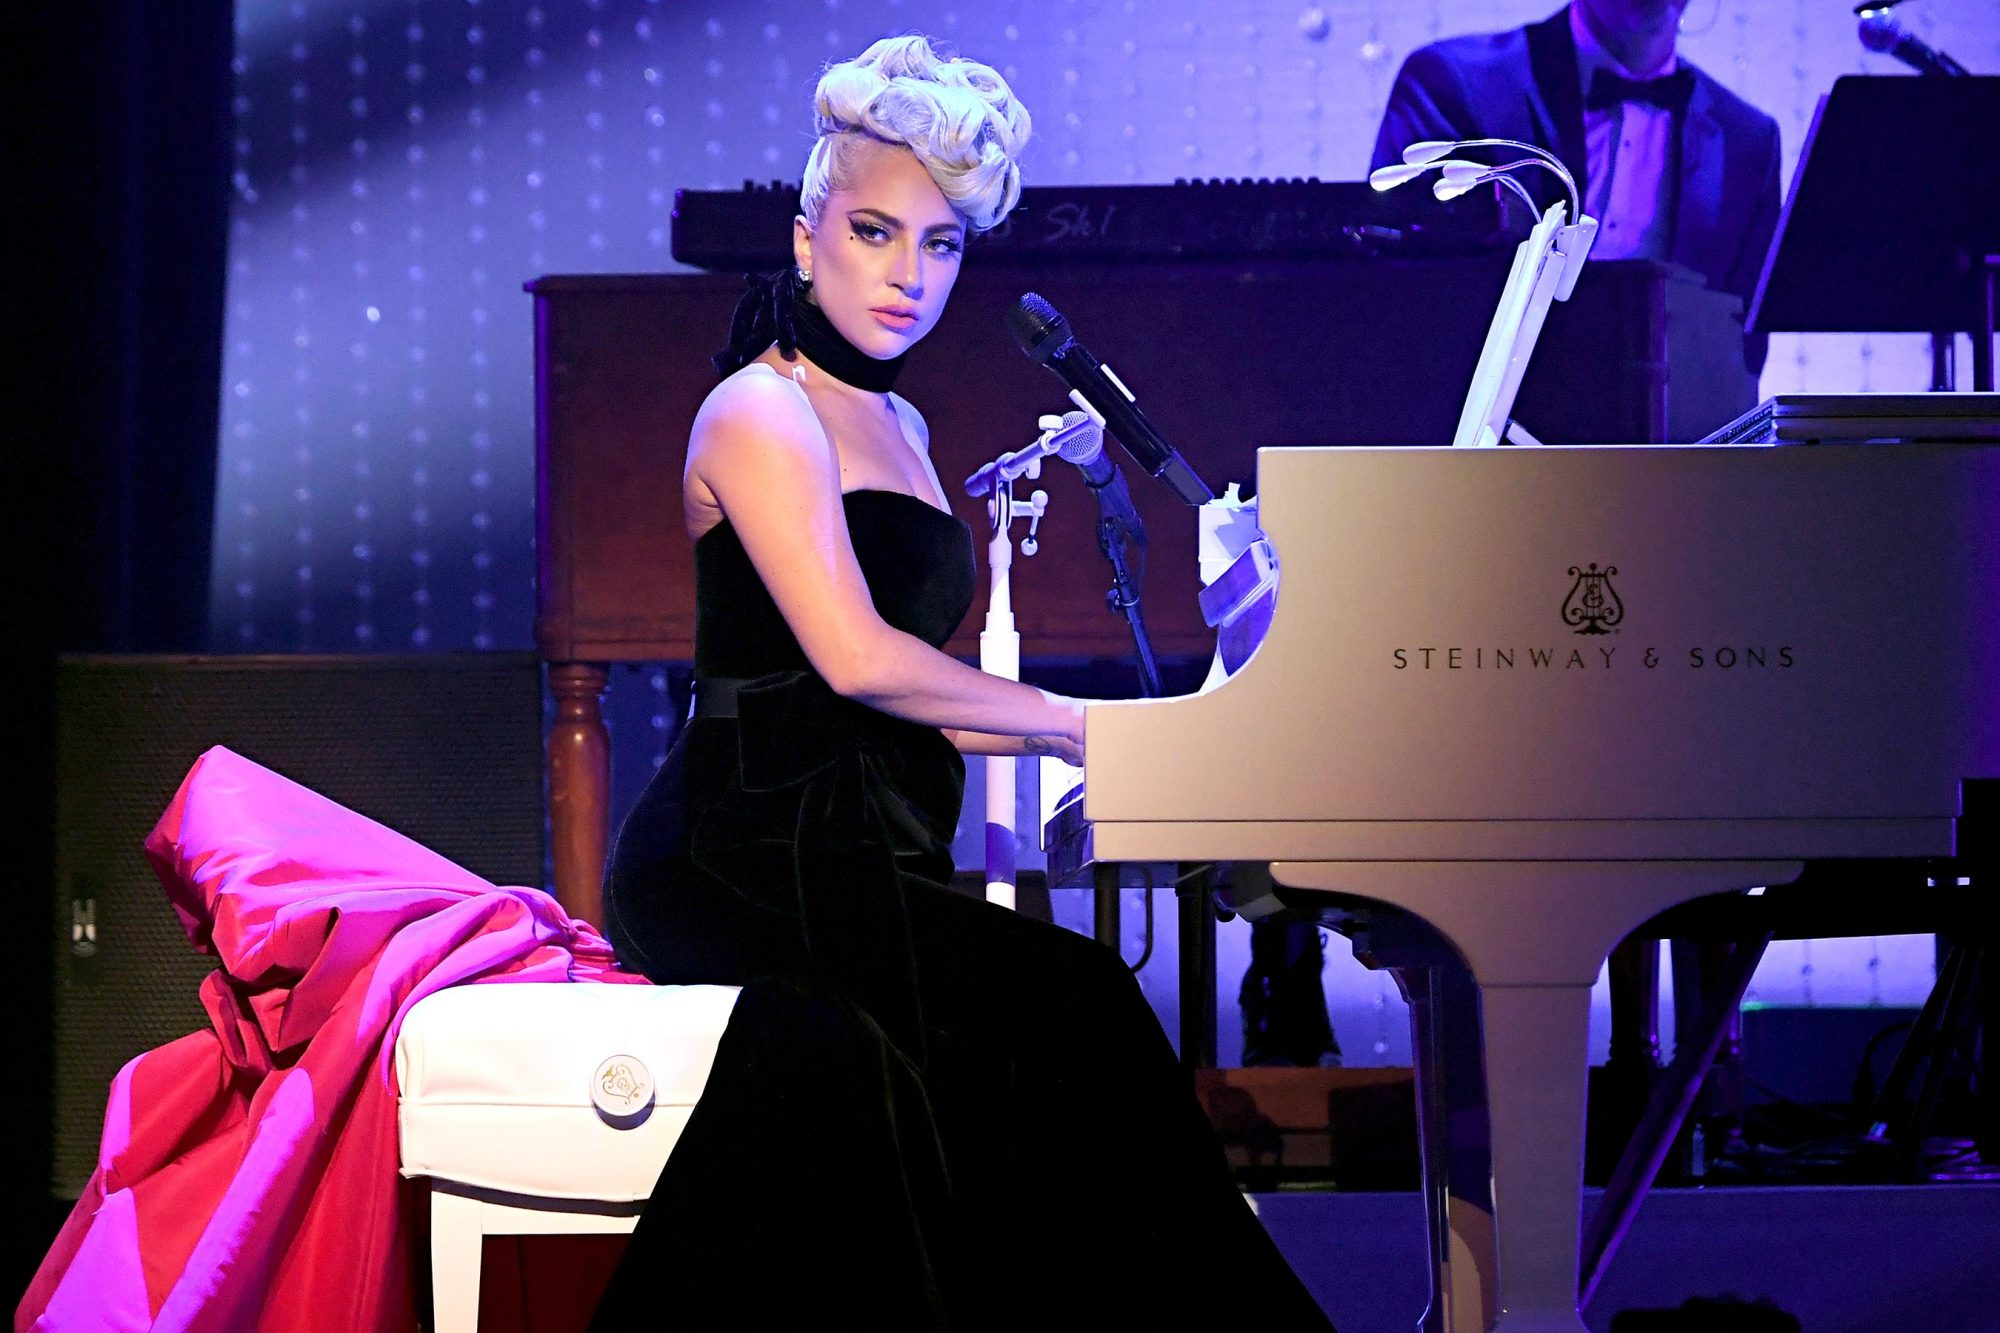 LADY GAGA JAZZ & PIANO at Park Theater at Park MGM in Las Vegas